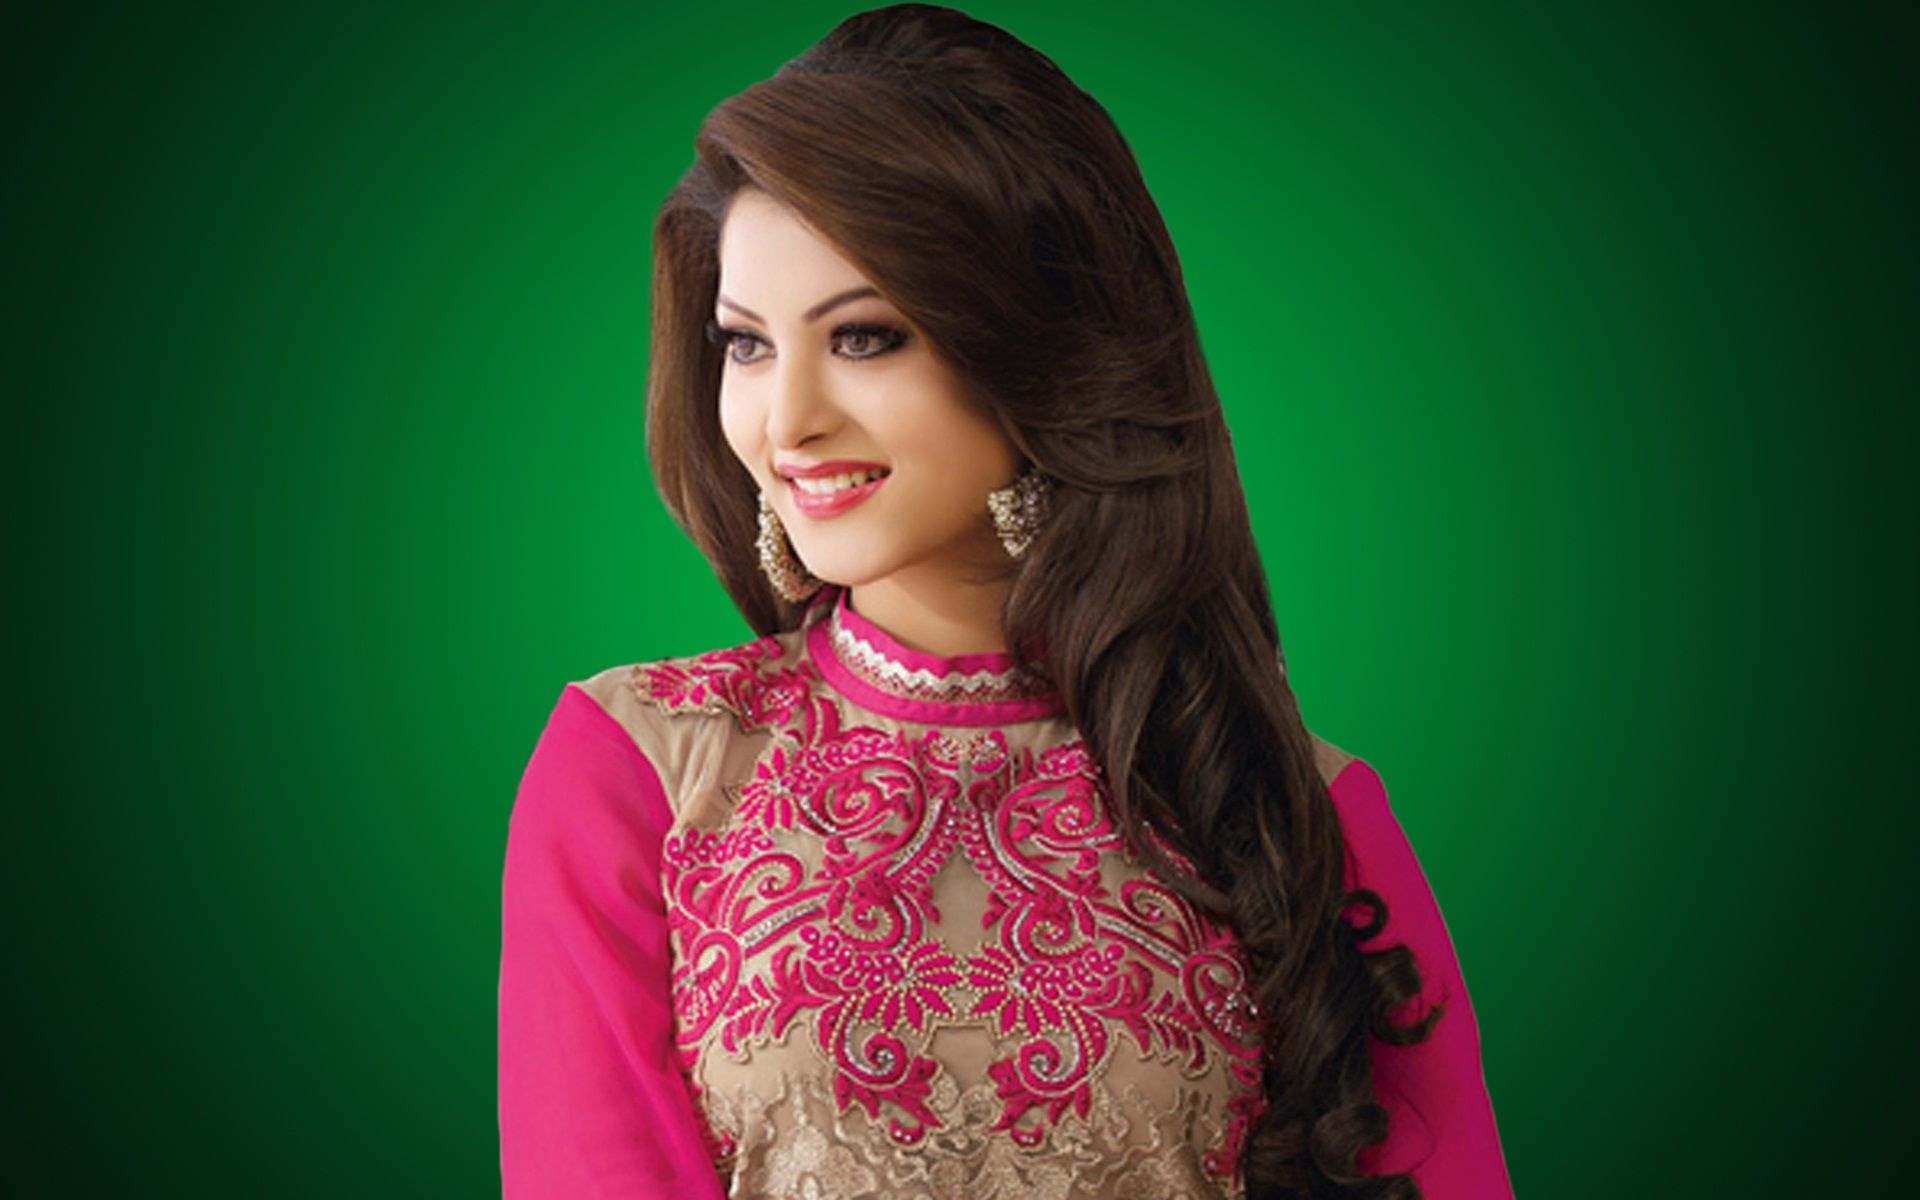 Hd wallpaper urvashi - Find This Pin And More On Urvashi Rautela Hd Images By Wowhdbackground